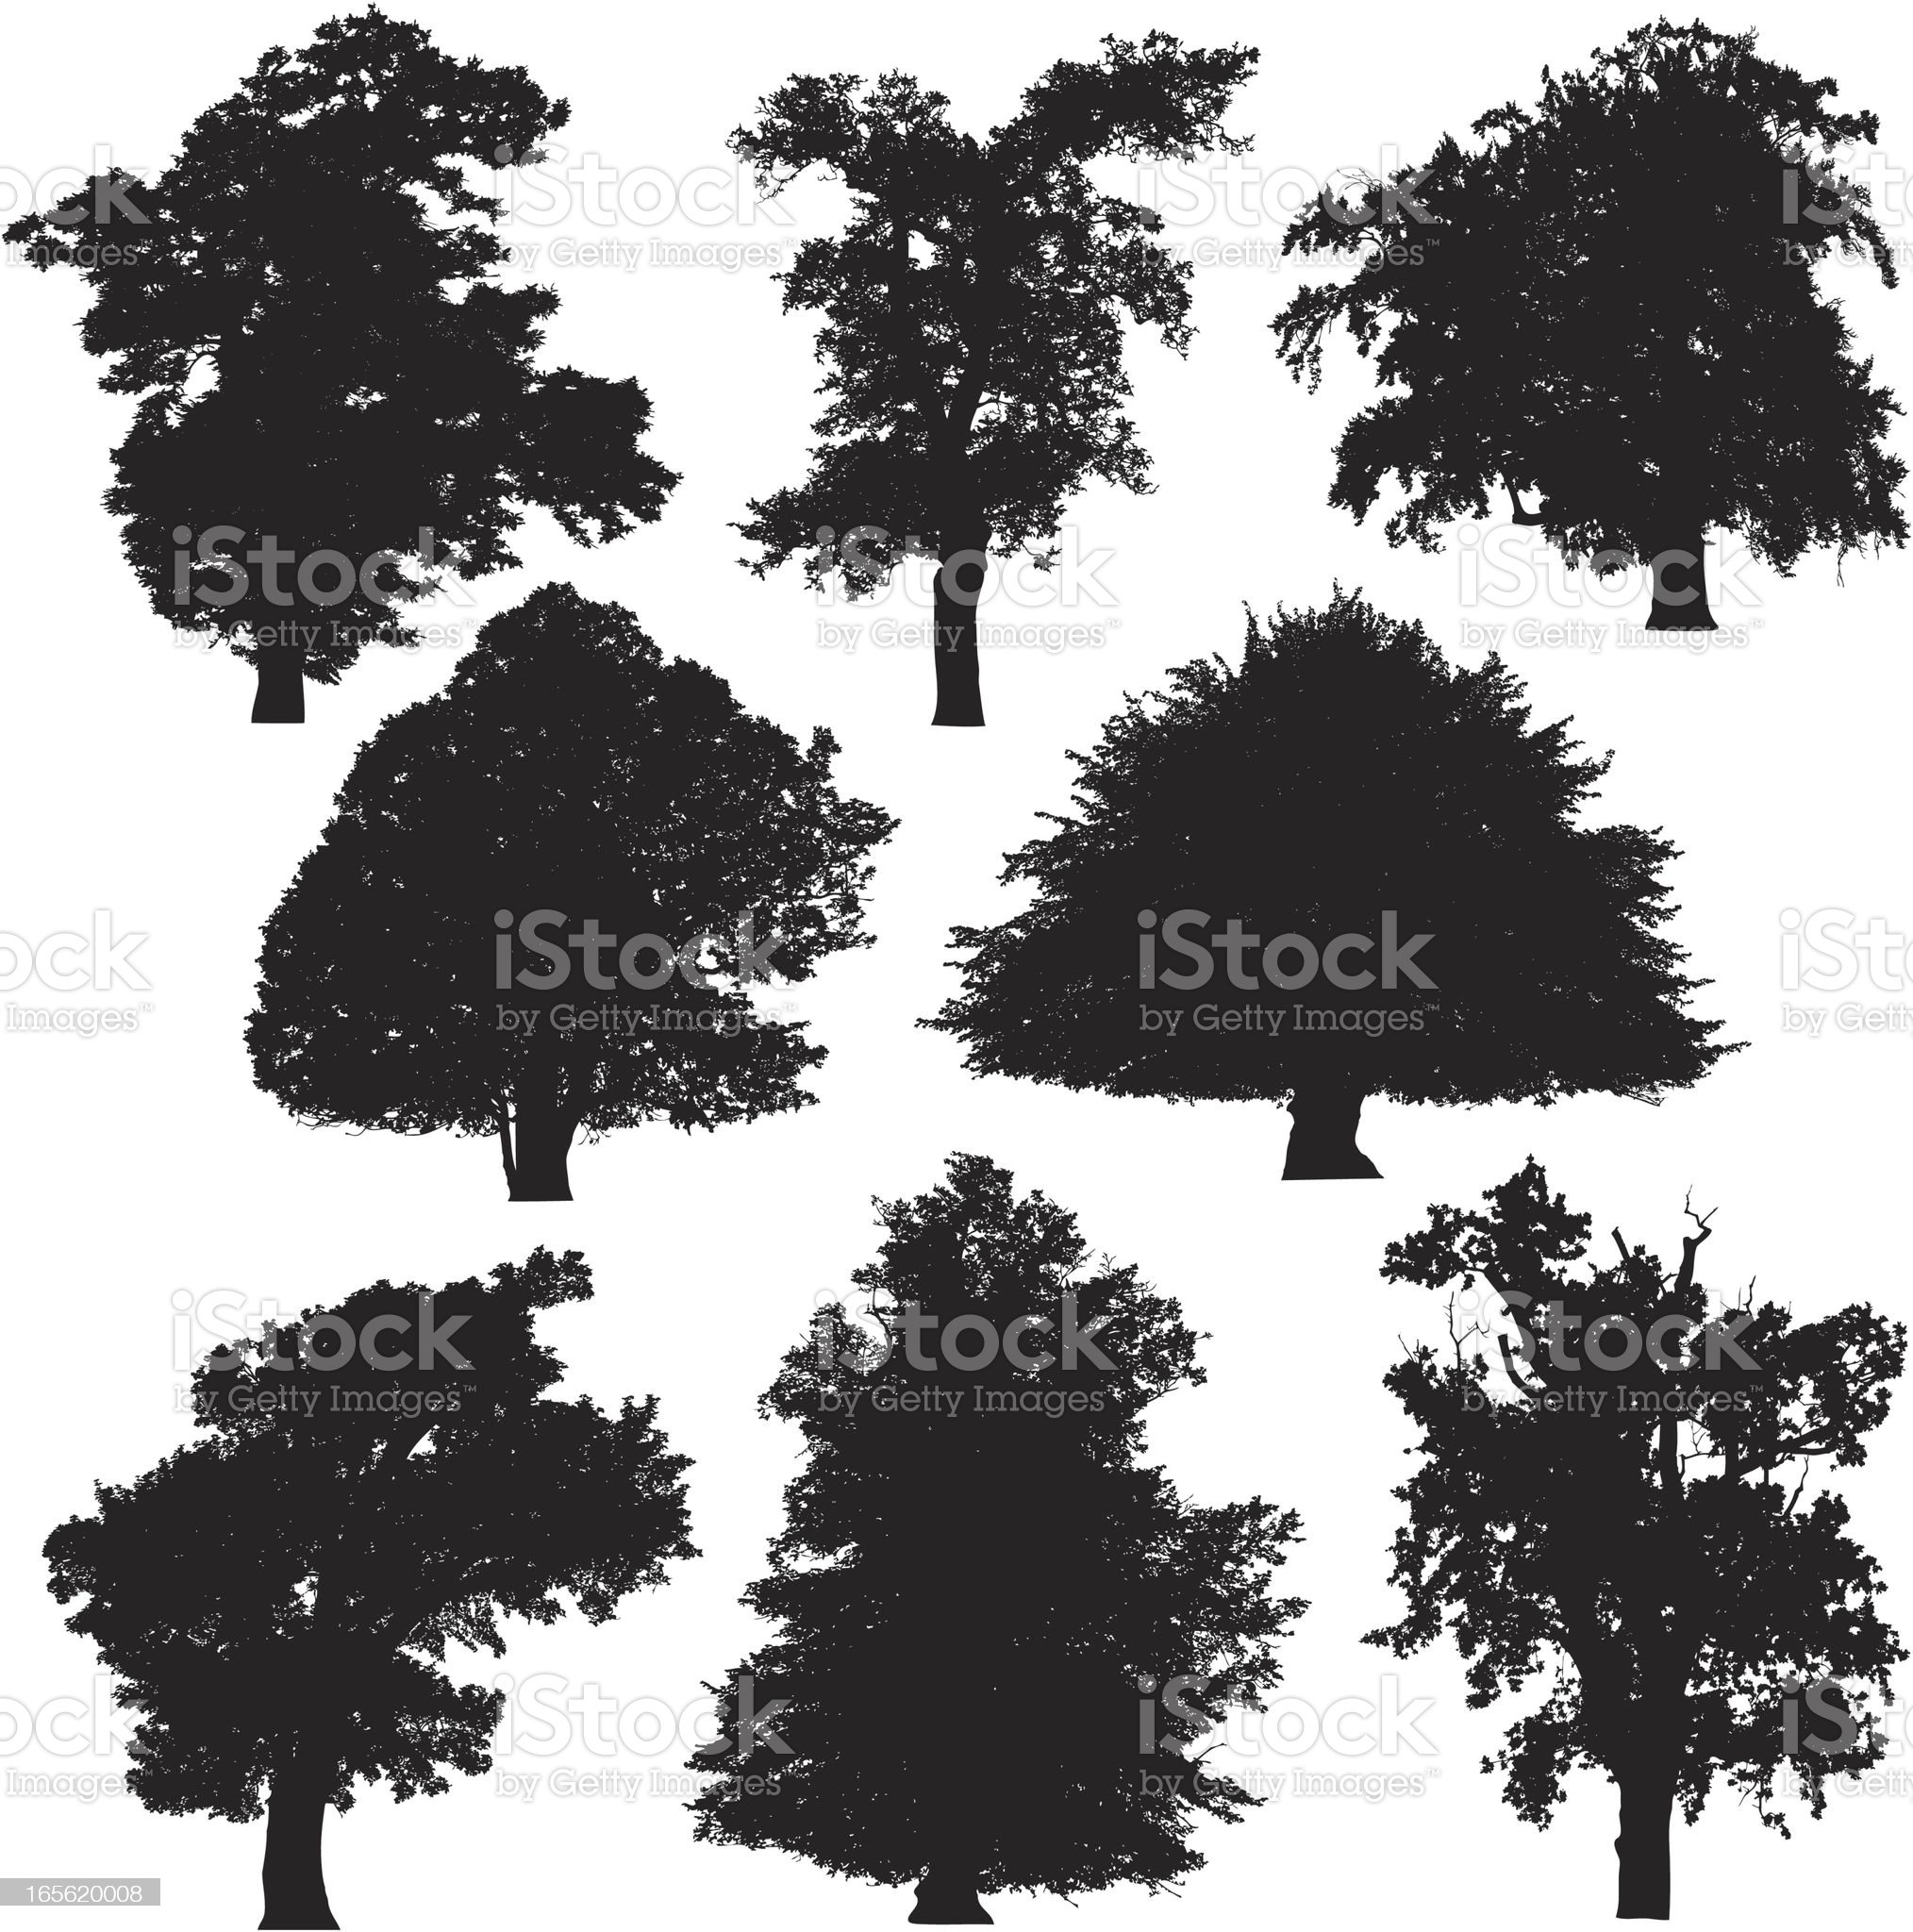 Tree silhouette collection 2 royalty-free stock vector art